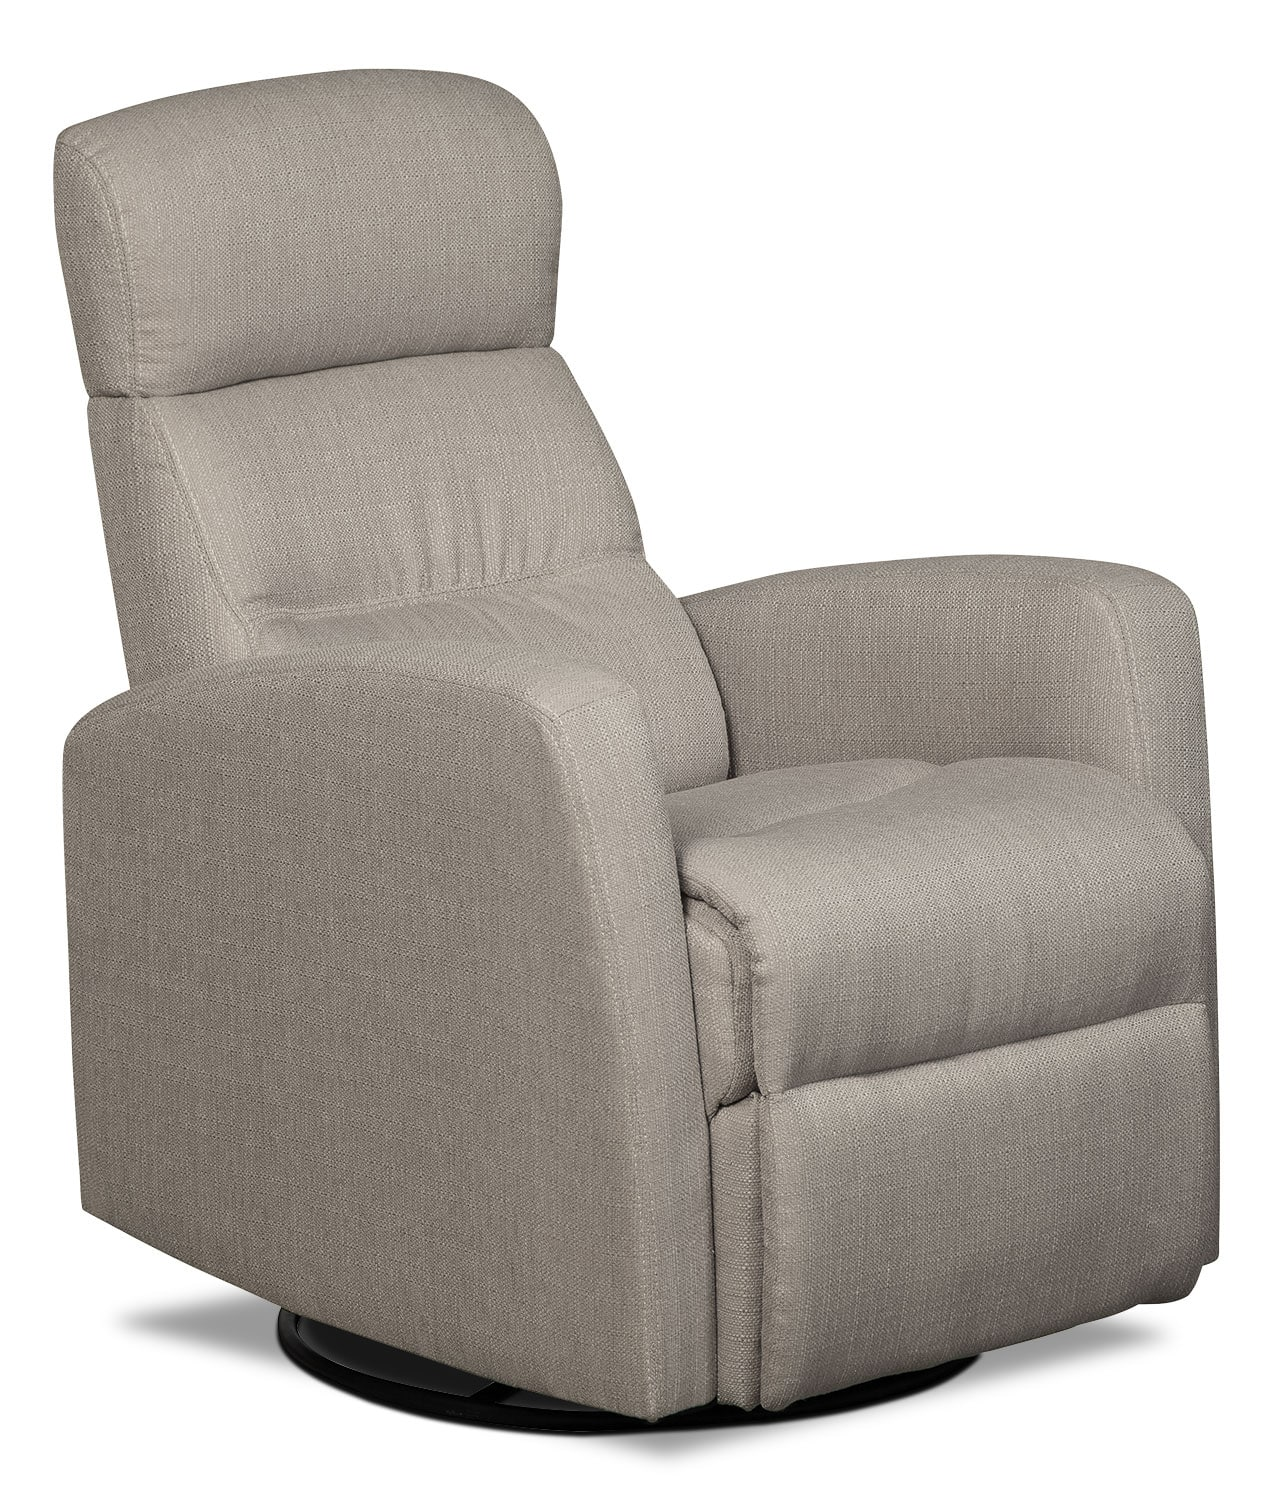 Penny Linen Look Fabric Swivel Rocker Reclining Chair